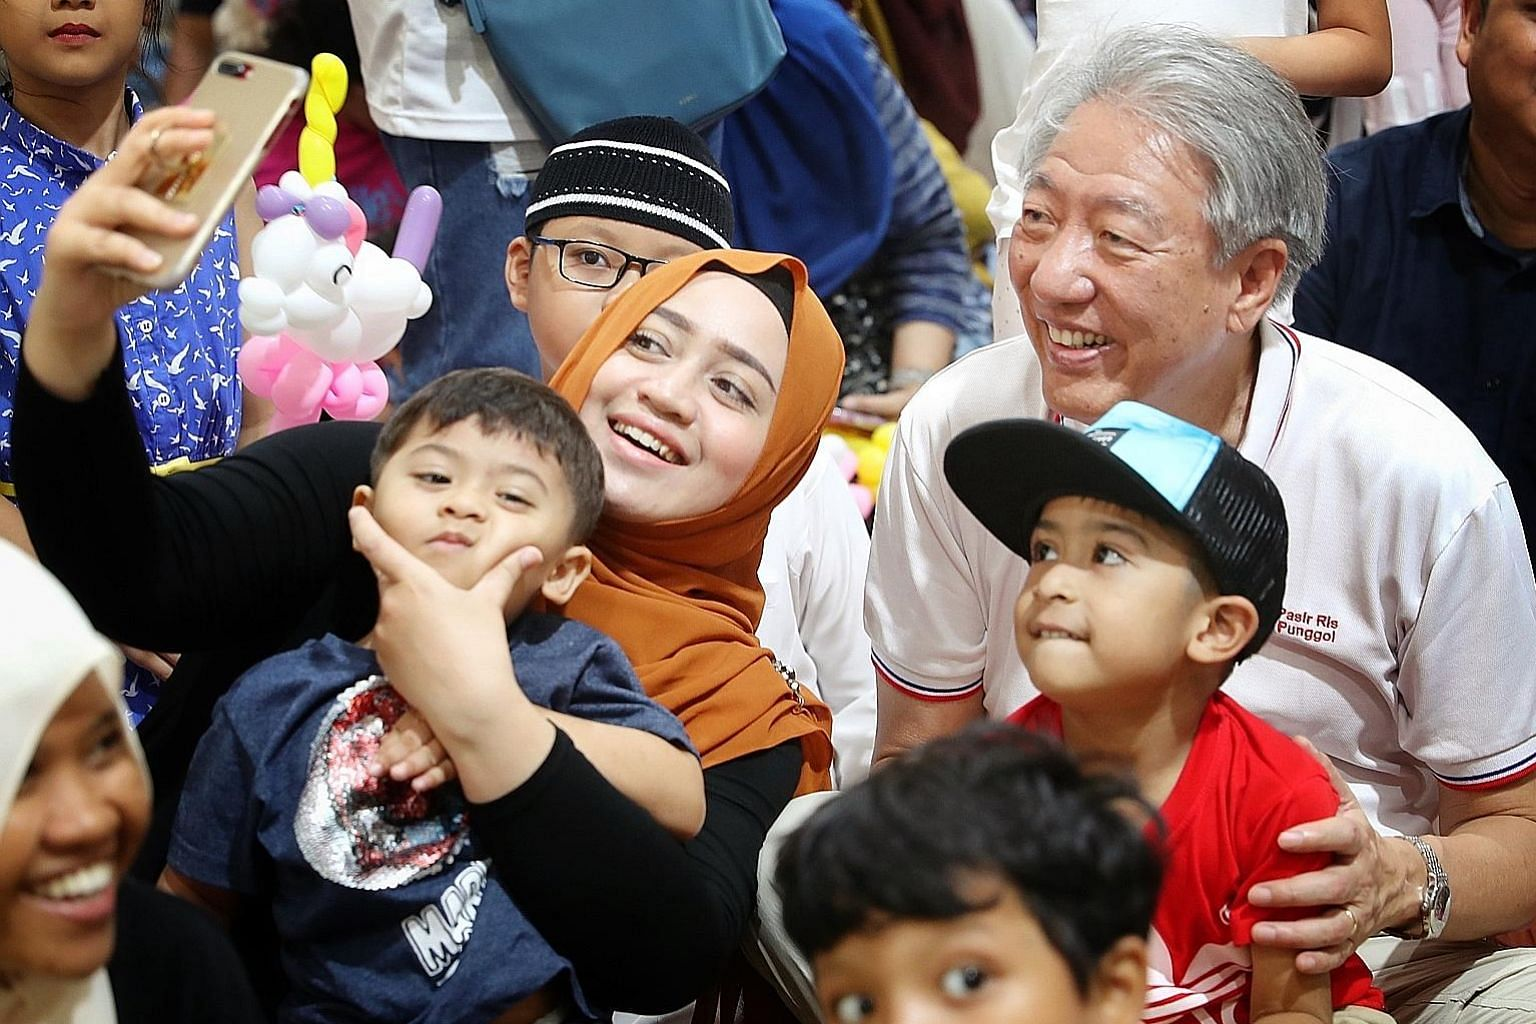 Deputy Prime Minister Teo Chee Hean having his picture taken with a family at the Malay Cultural Village event yesterday.